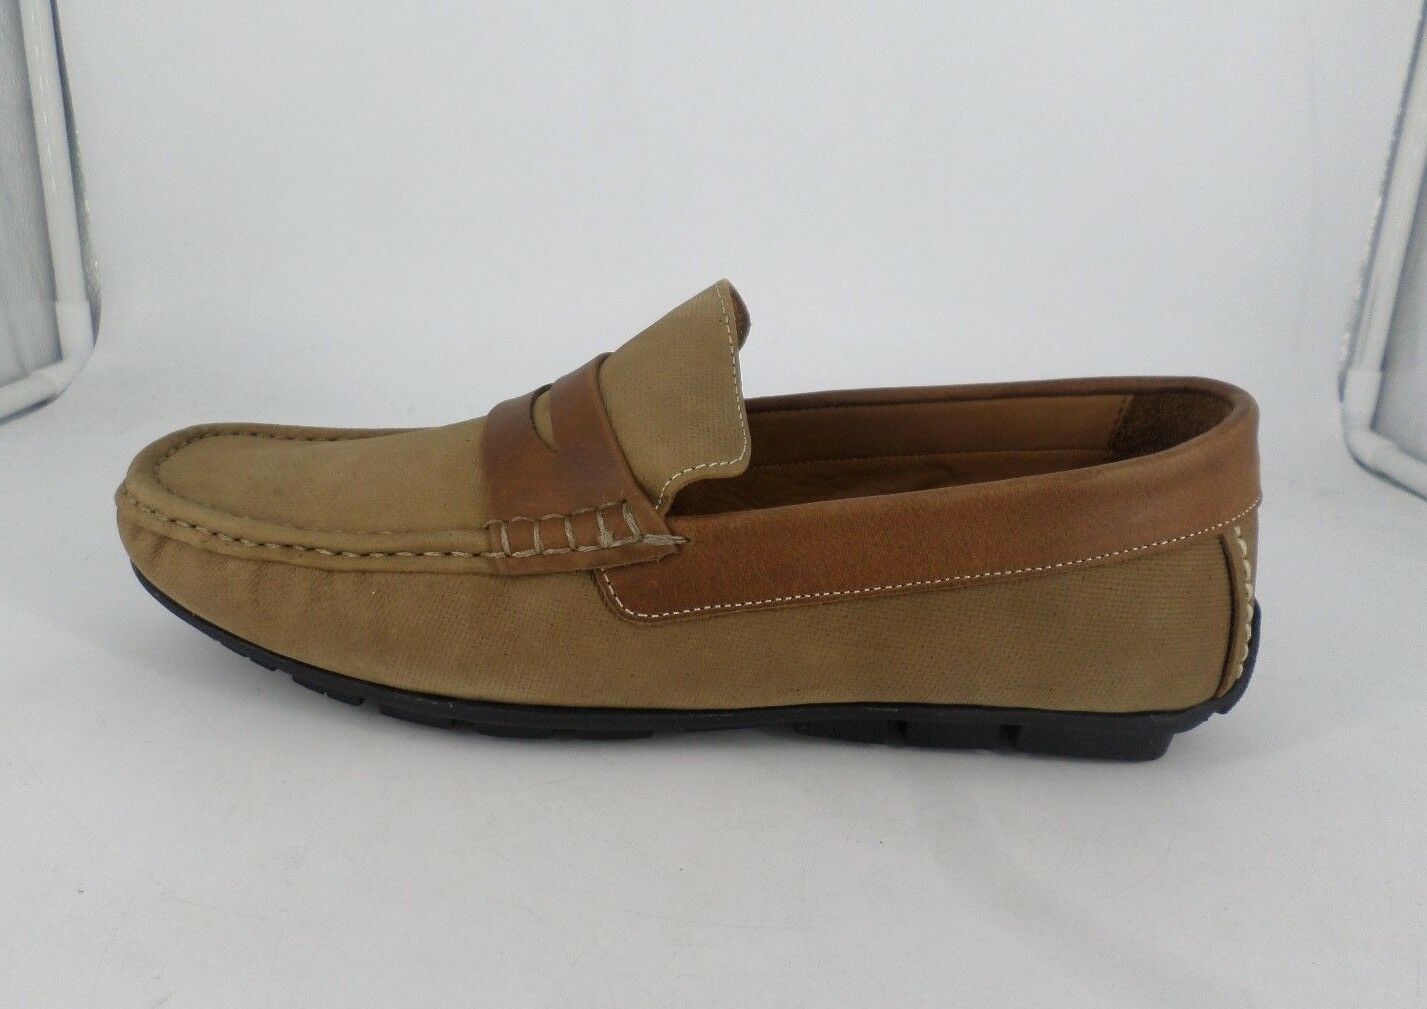 Clásico zapato de conducción Samuel Windsor marrón UK 10.5 EU 45 LN15 95 SALEX